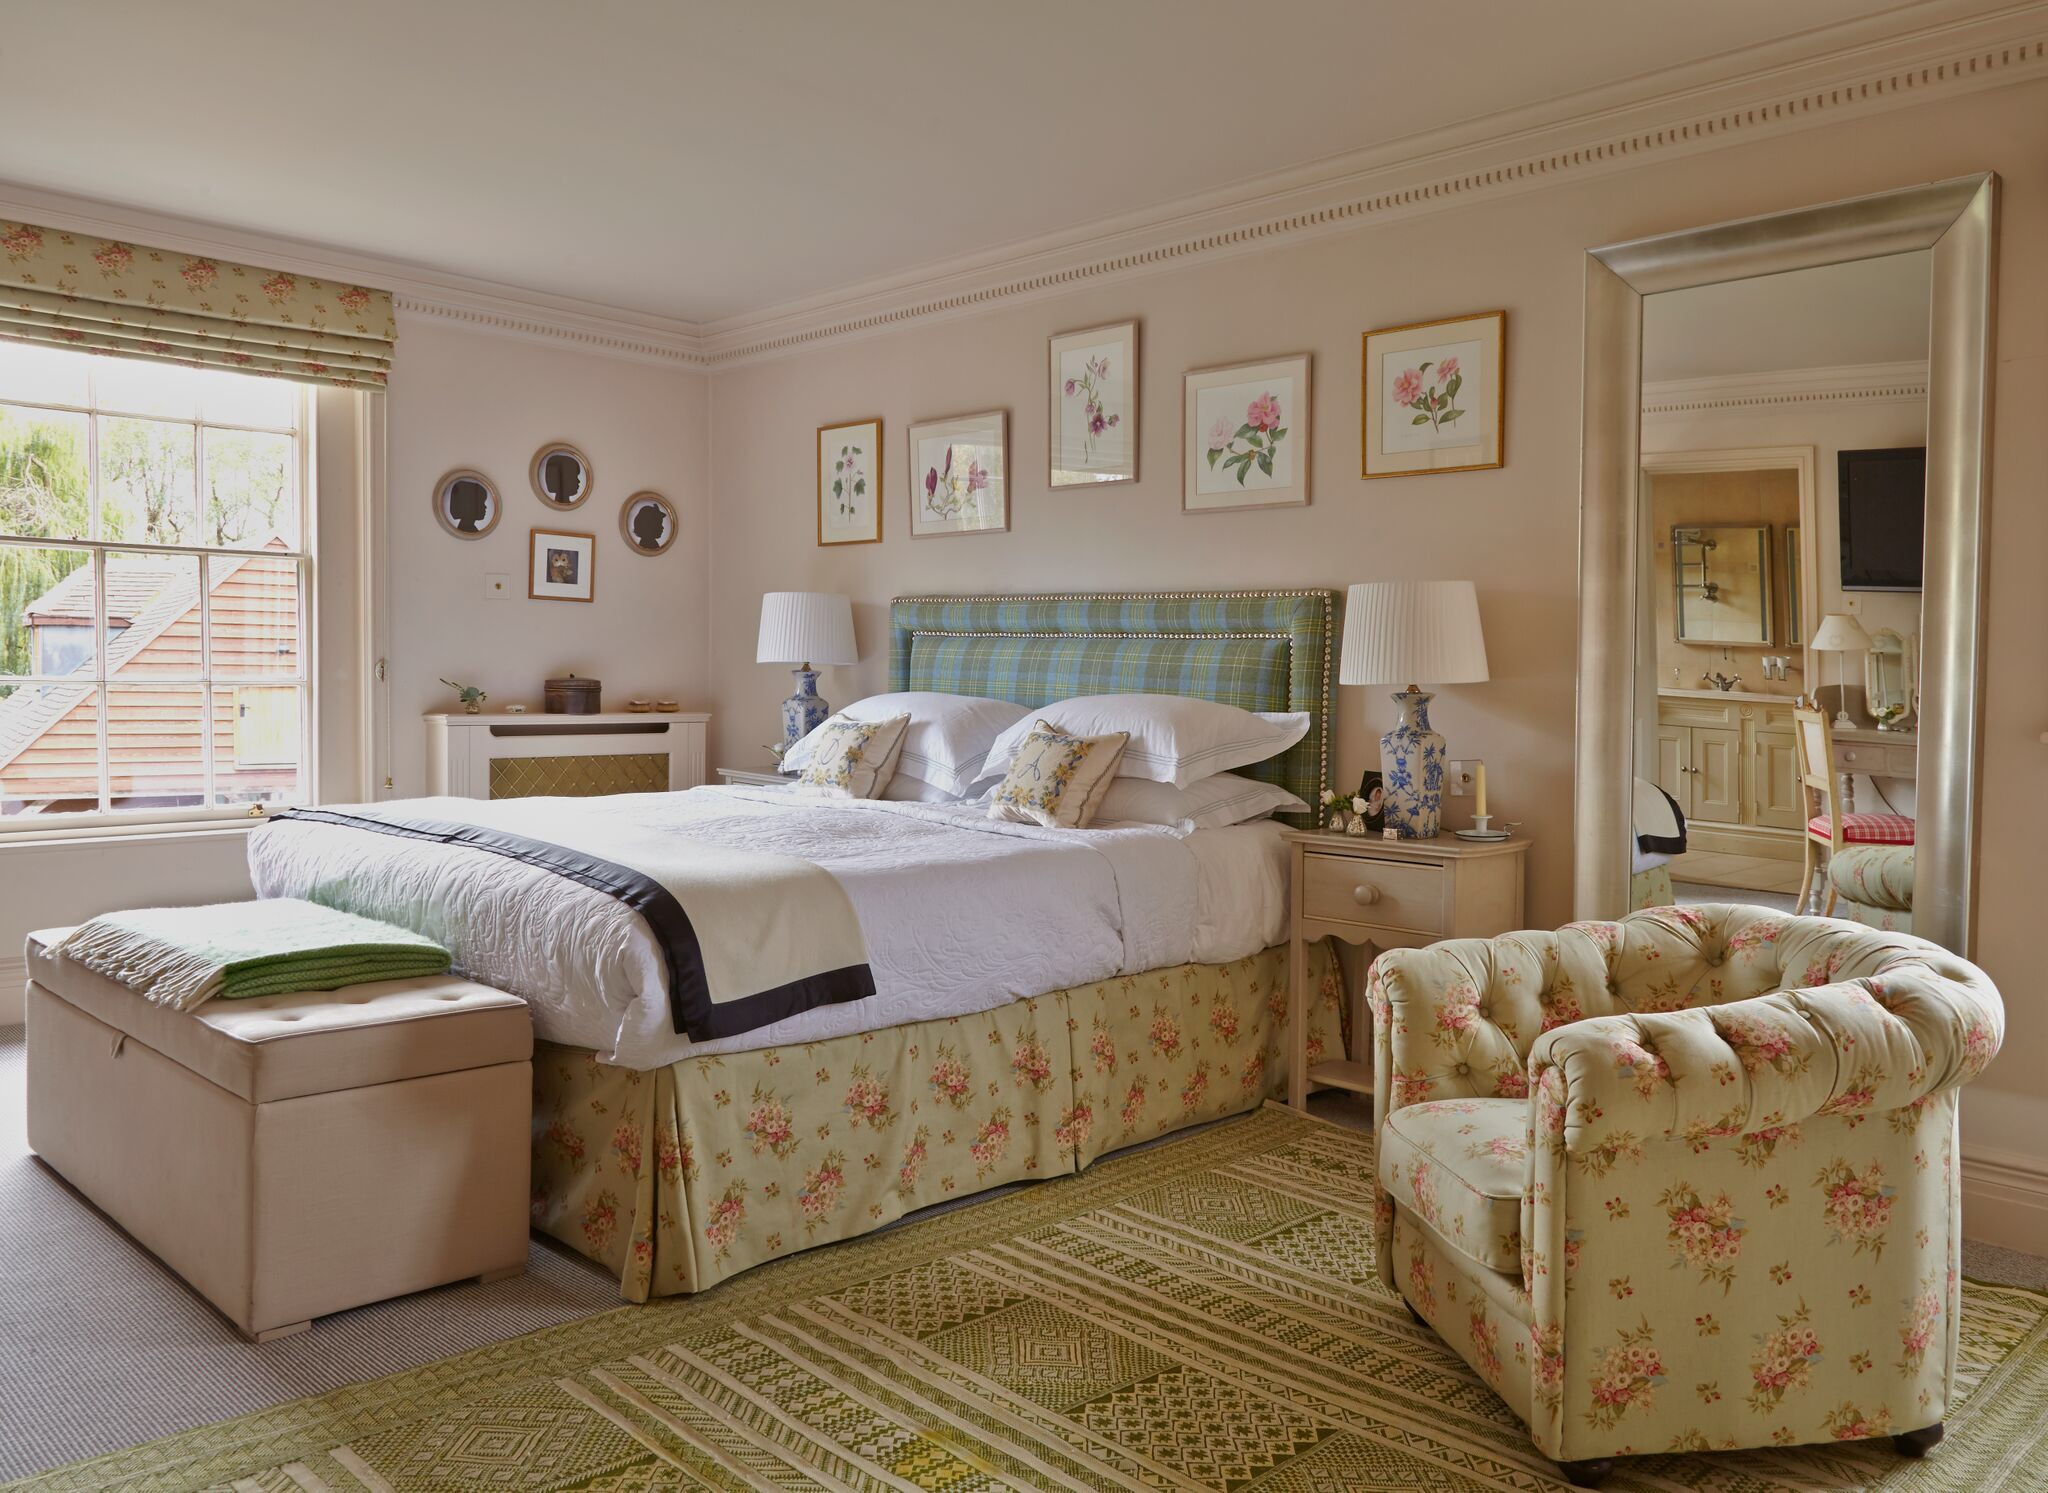 10 Pretty Ideas To Decorate Your Bedroom bedroom ideas 52 modern design ideas for your bedroom the luxpad 2